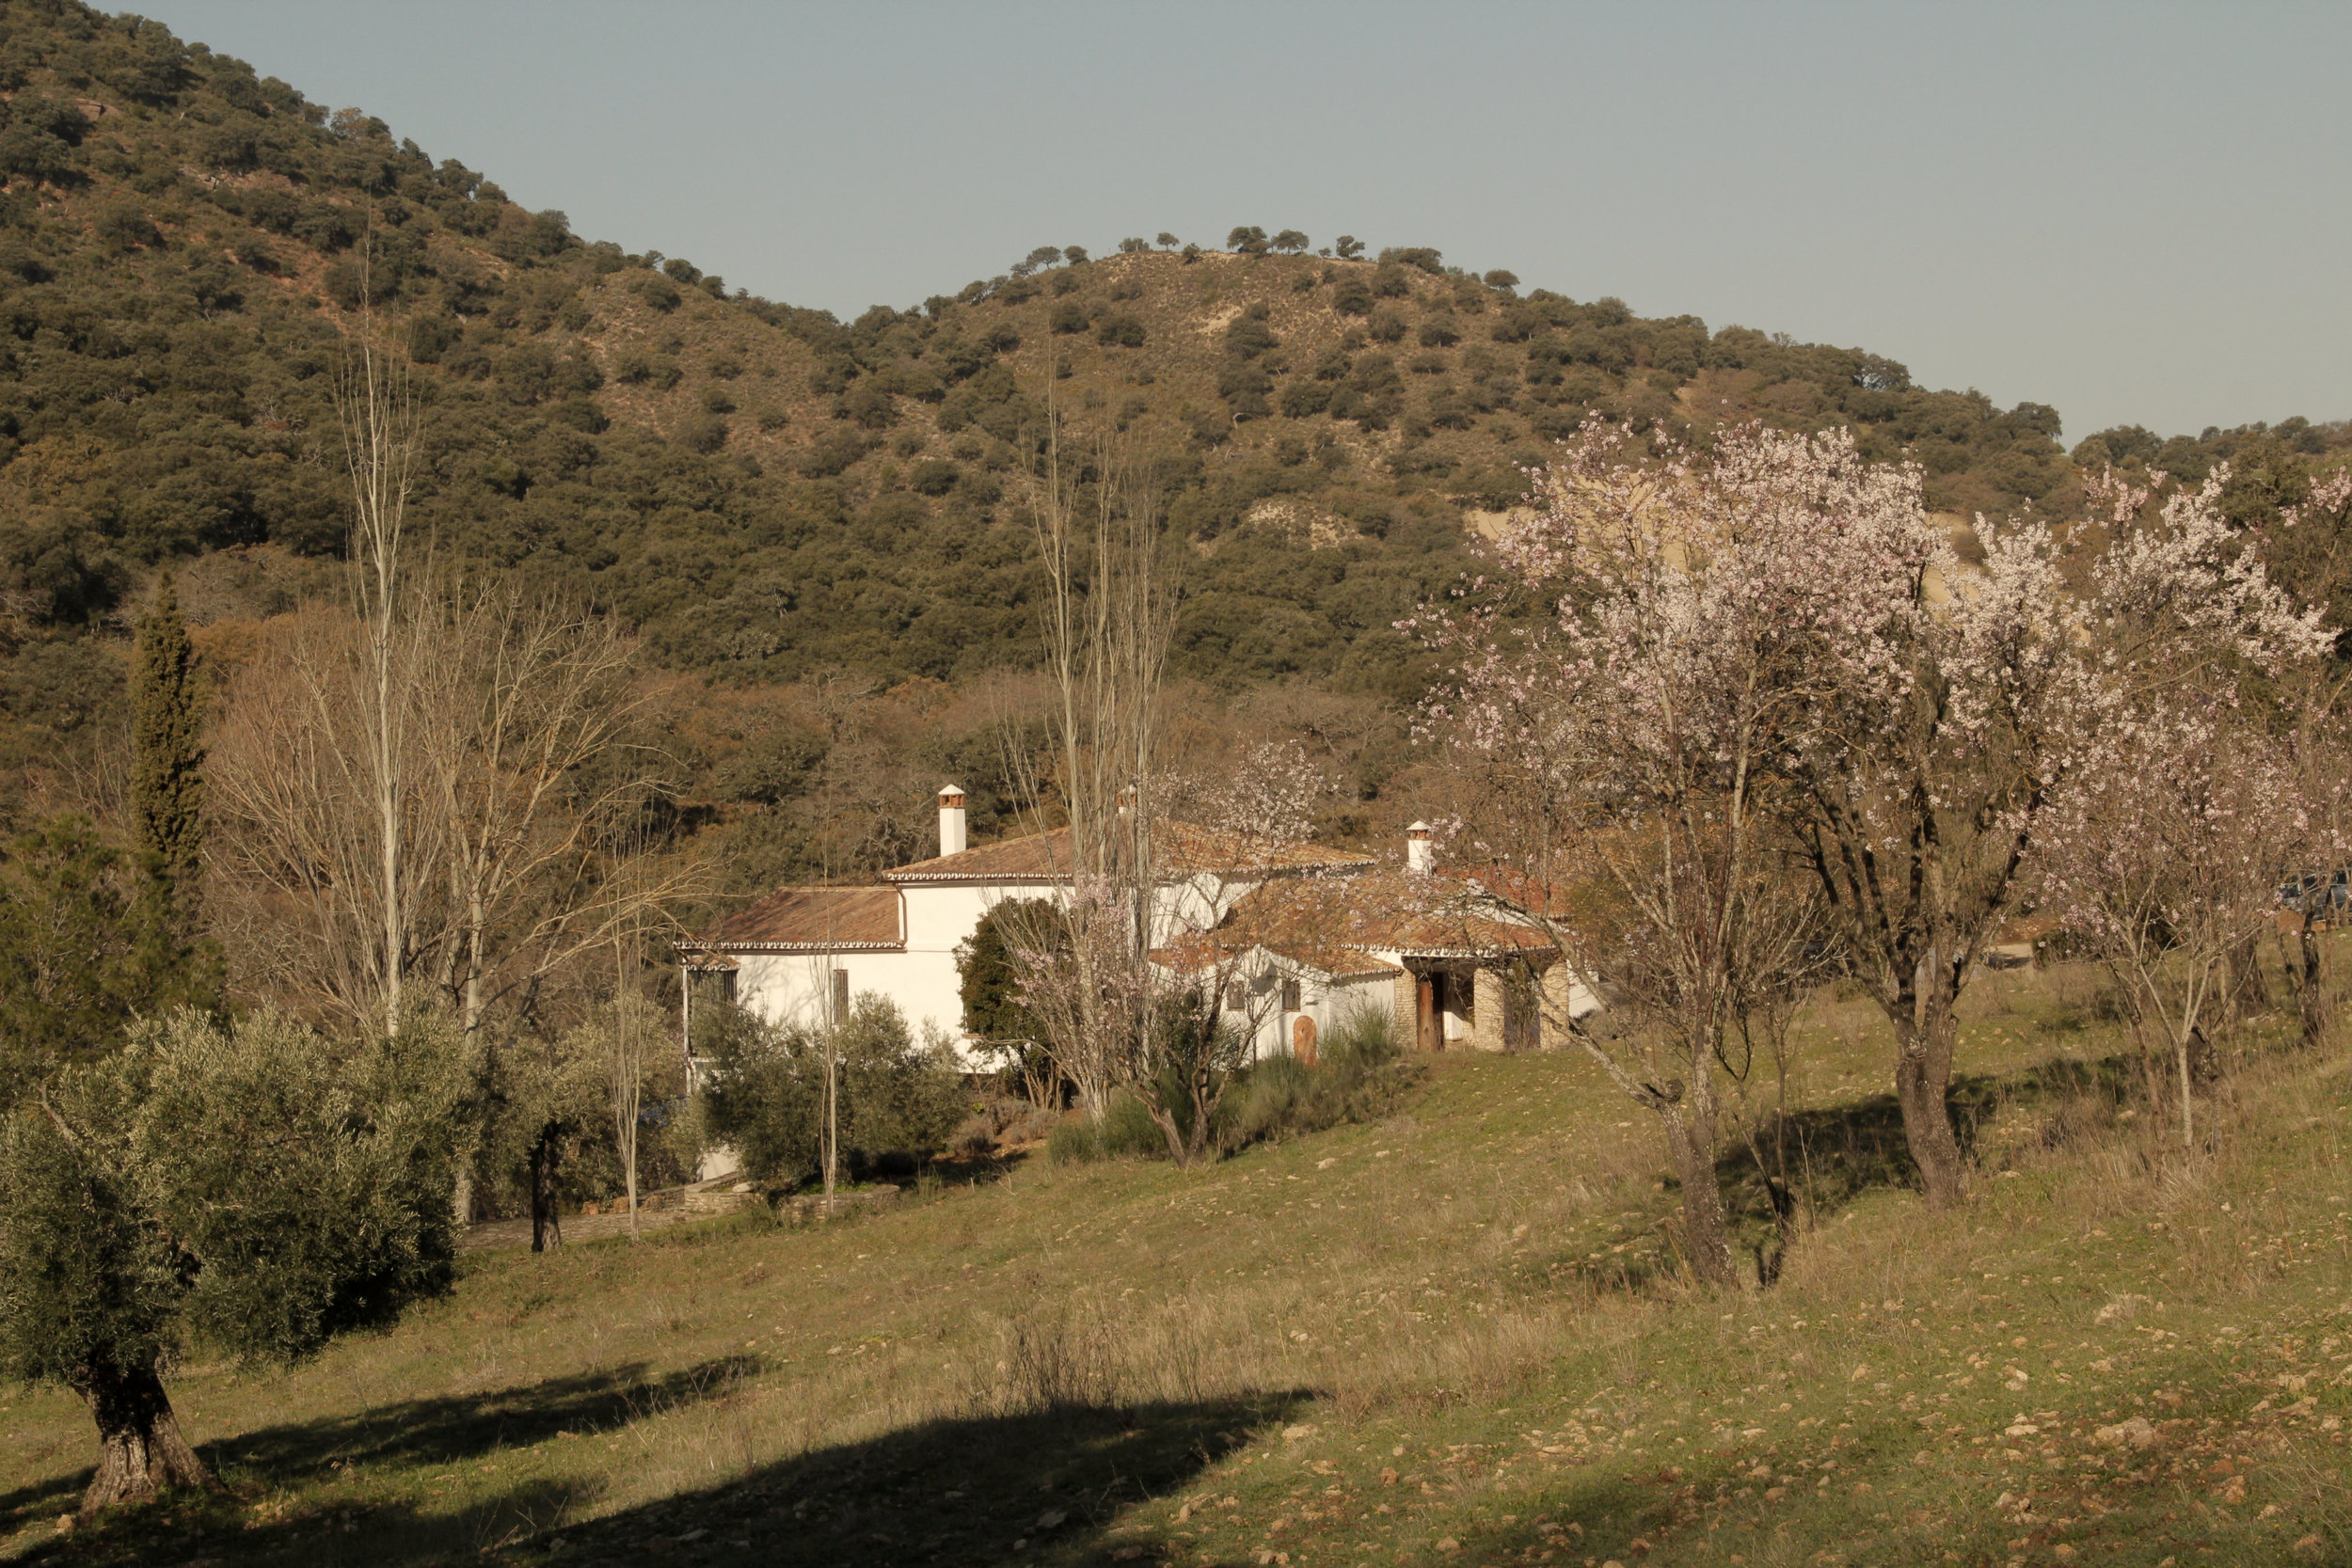 Almond trees in blossom at our luxury villa rental in Ronda, Andalucia